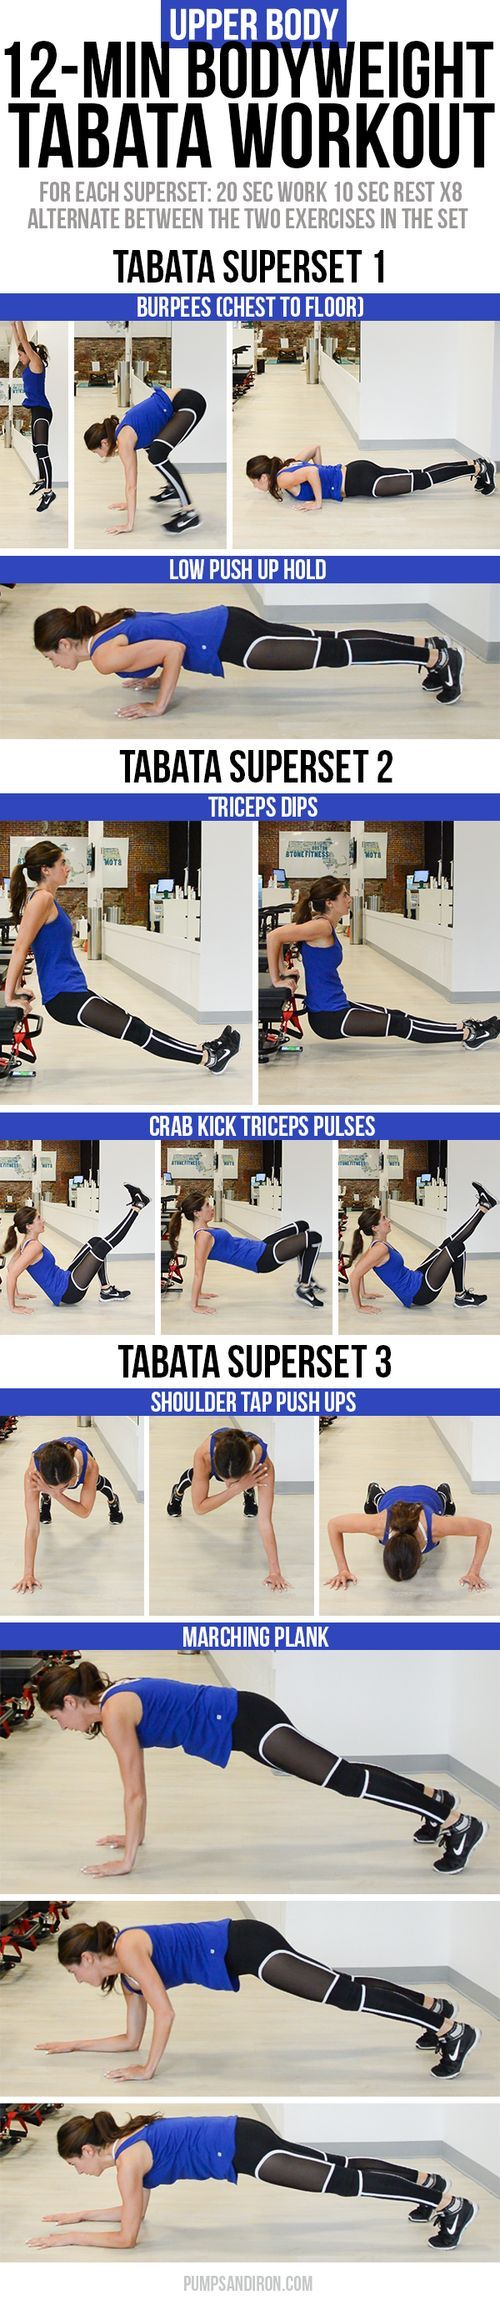 12-Minute Bodyweight Tabata Workout Series: Upper Body (Chest, Arms, Core)